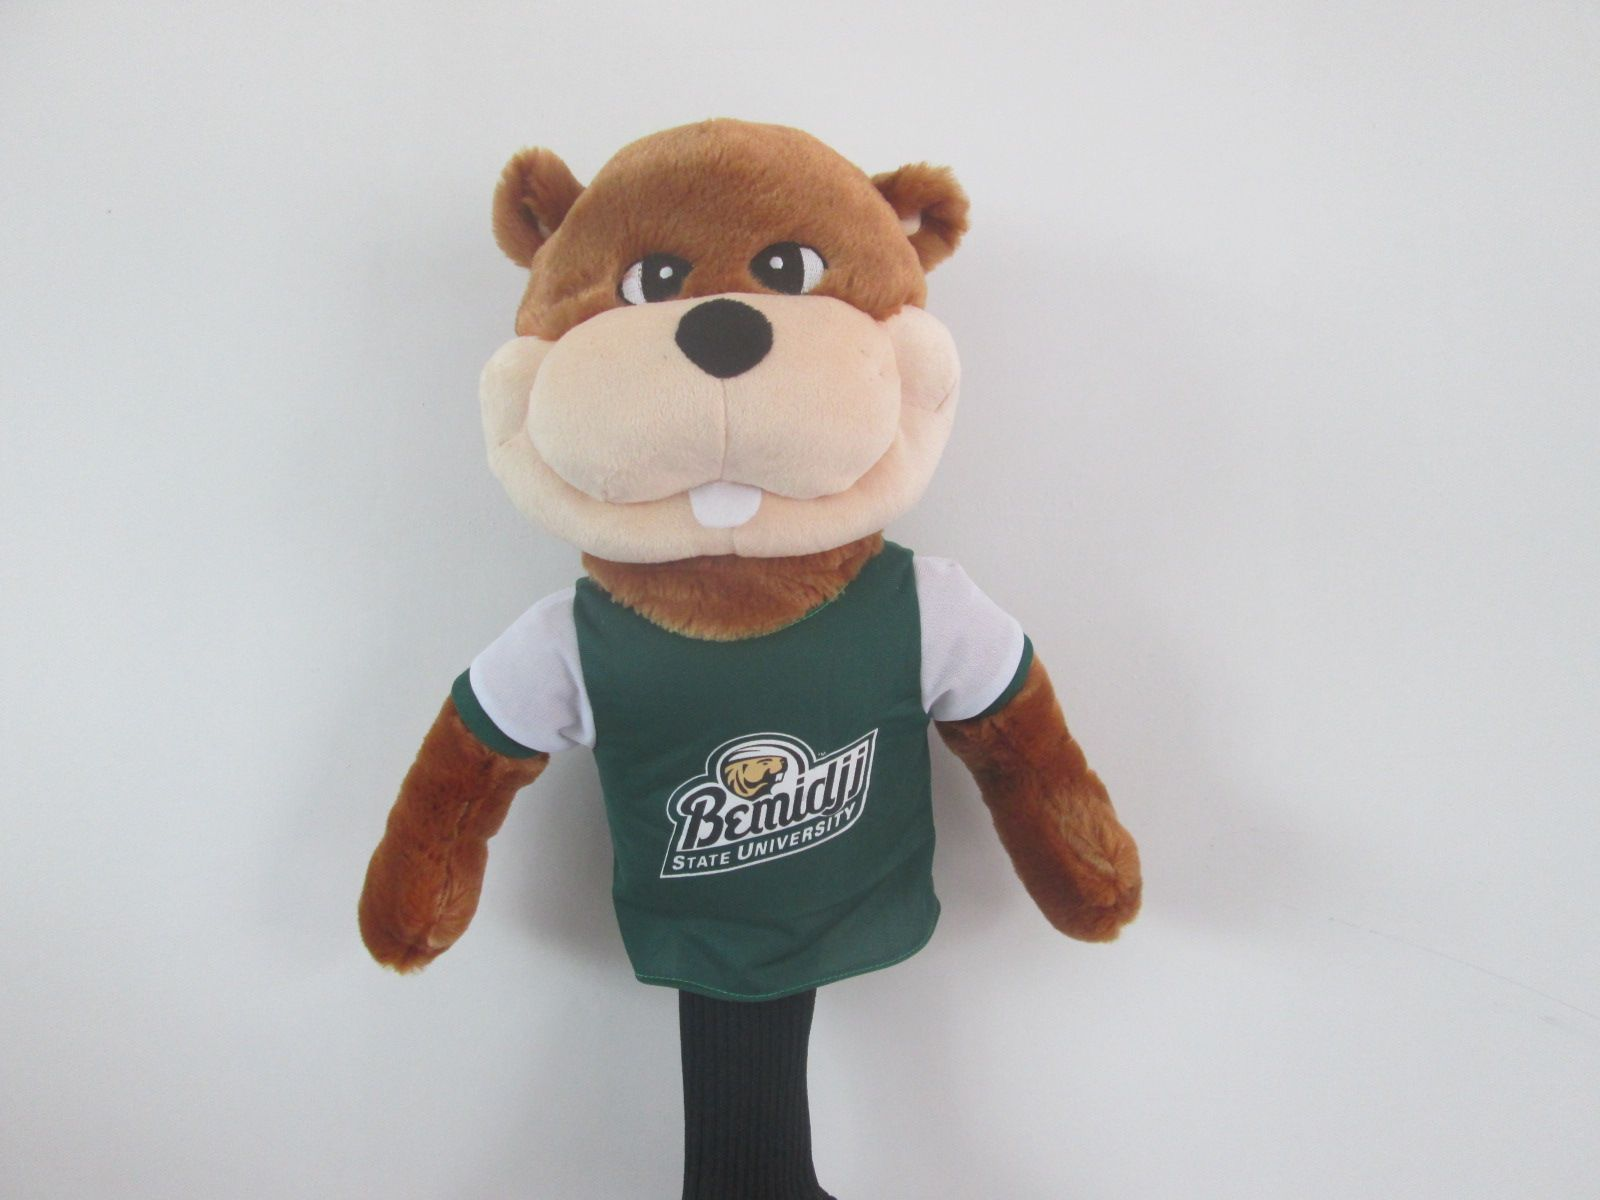 bucky the bemidji state beaver golf headcover please inquire about this product at mcgolfheadcovers integra net cost 29 golf headcovers bemidji mascot bemidji state beaver golf headcover